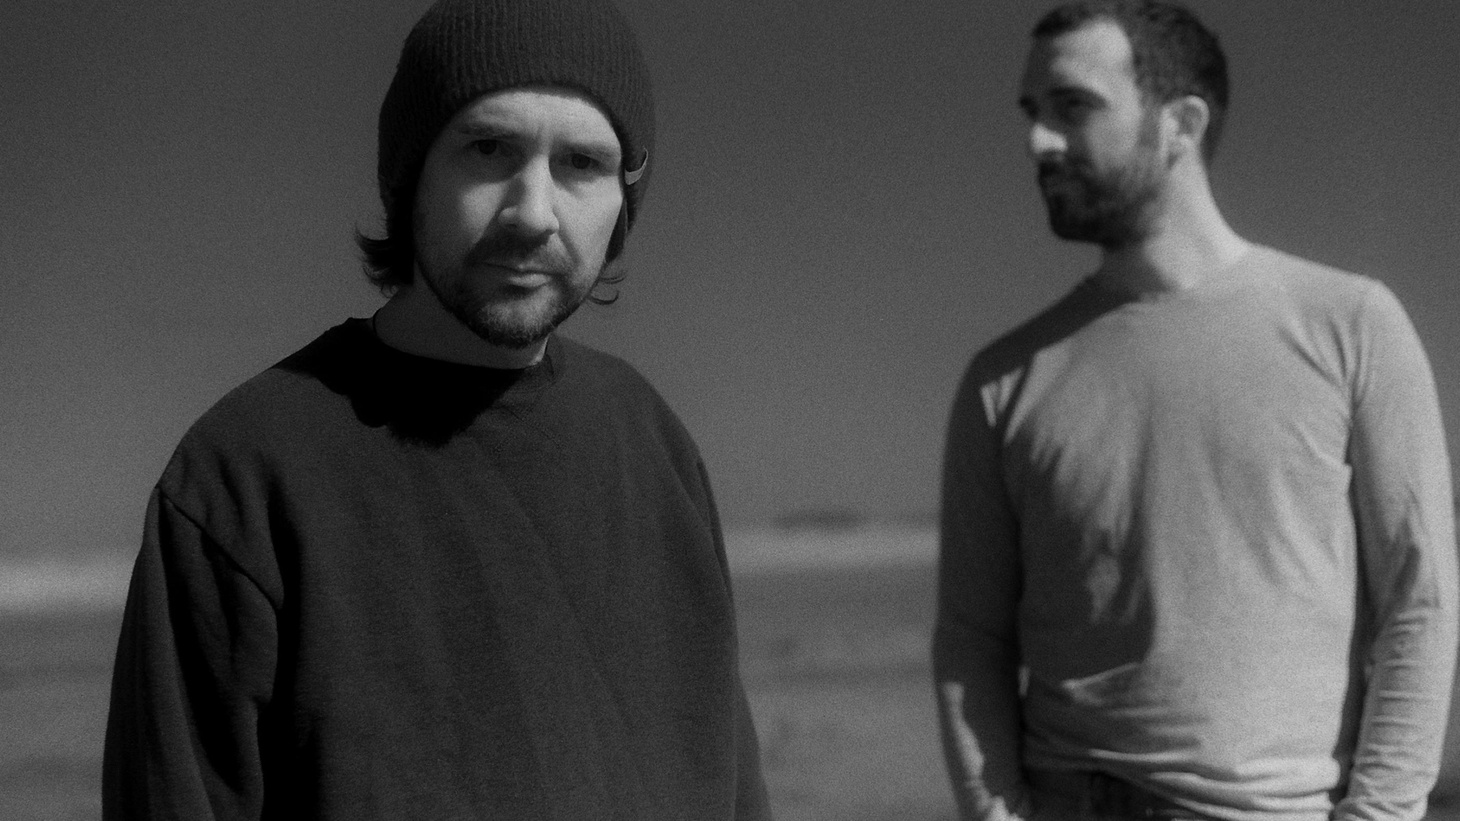 Boards of Canada creates music that reaches out to the cosmos. Their new album was a complete surprise and met with lots of excitement from longtime fans.